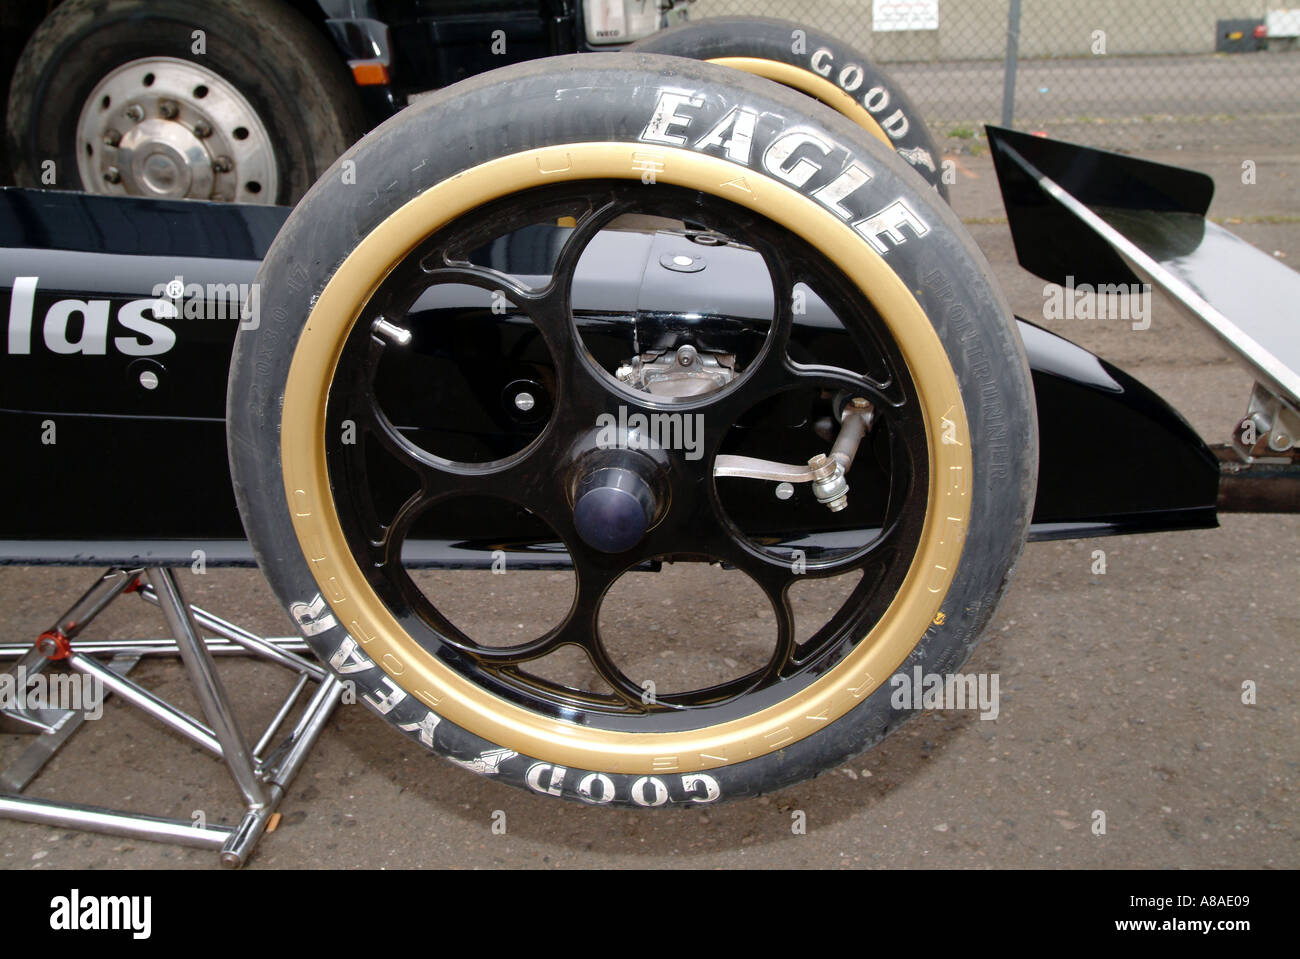 front wheels and wing on a top fuel dragster skinny dragster wheel stock photo royalty free. Black Bedroom Furniture Sets. Home Design Ideas